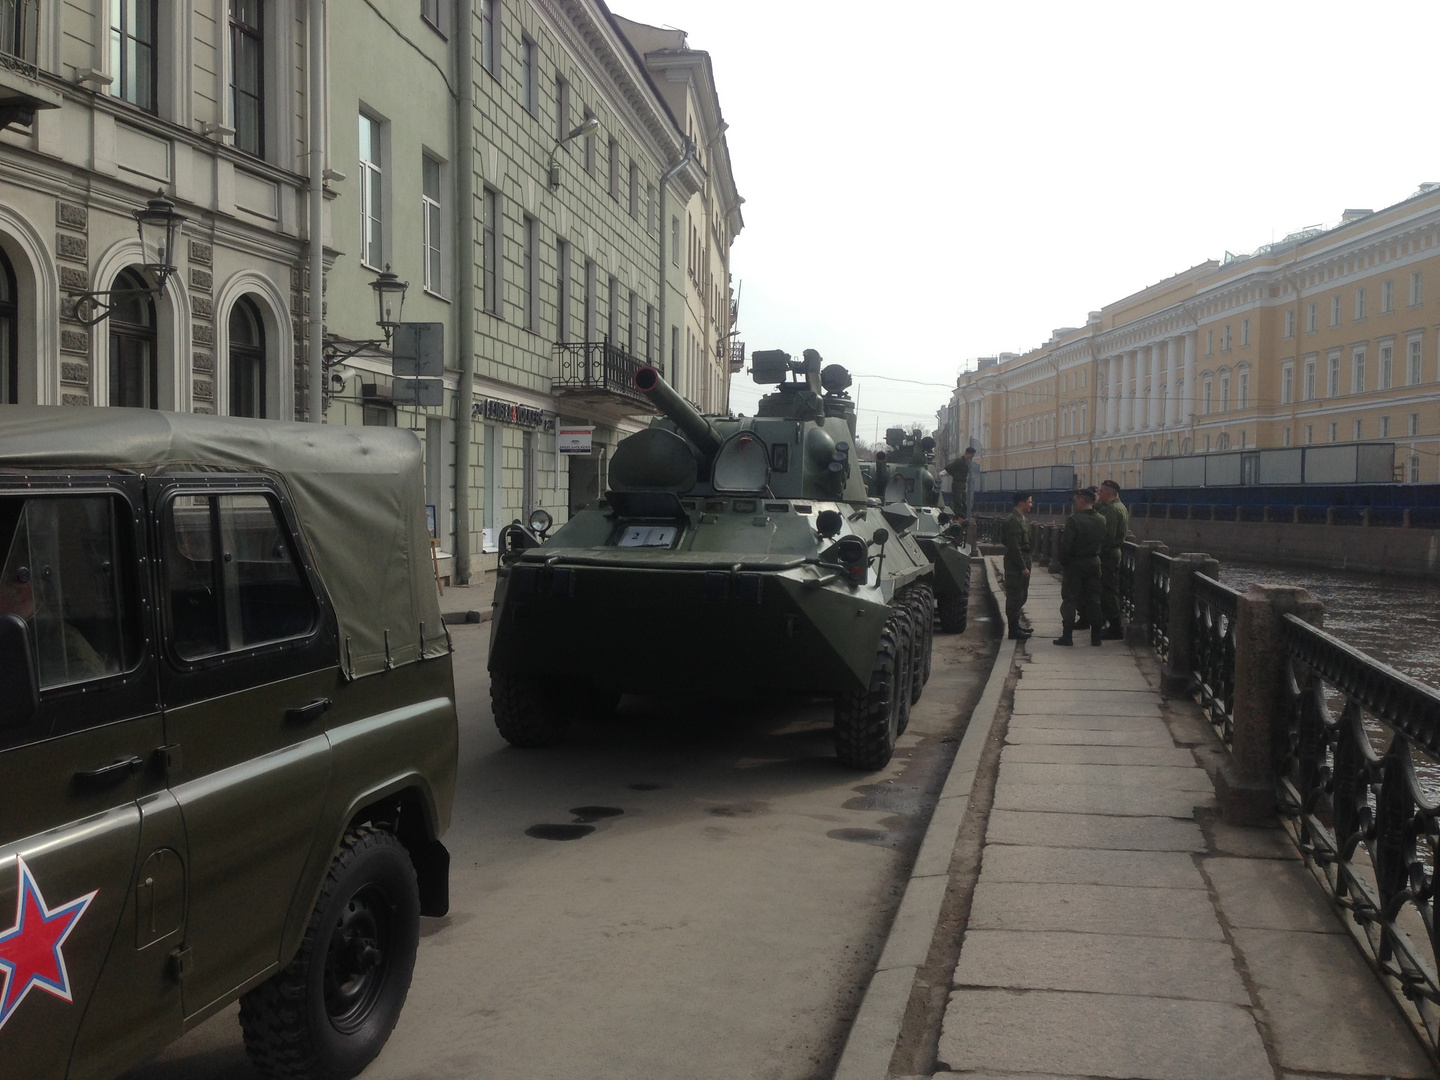 Tanks in the city, surprise